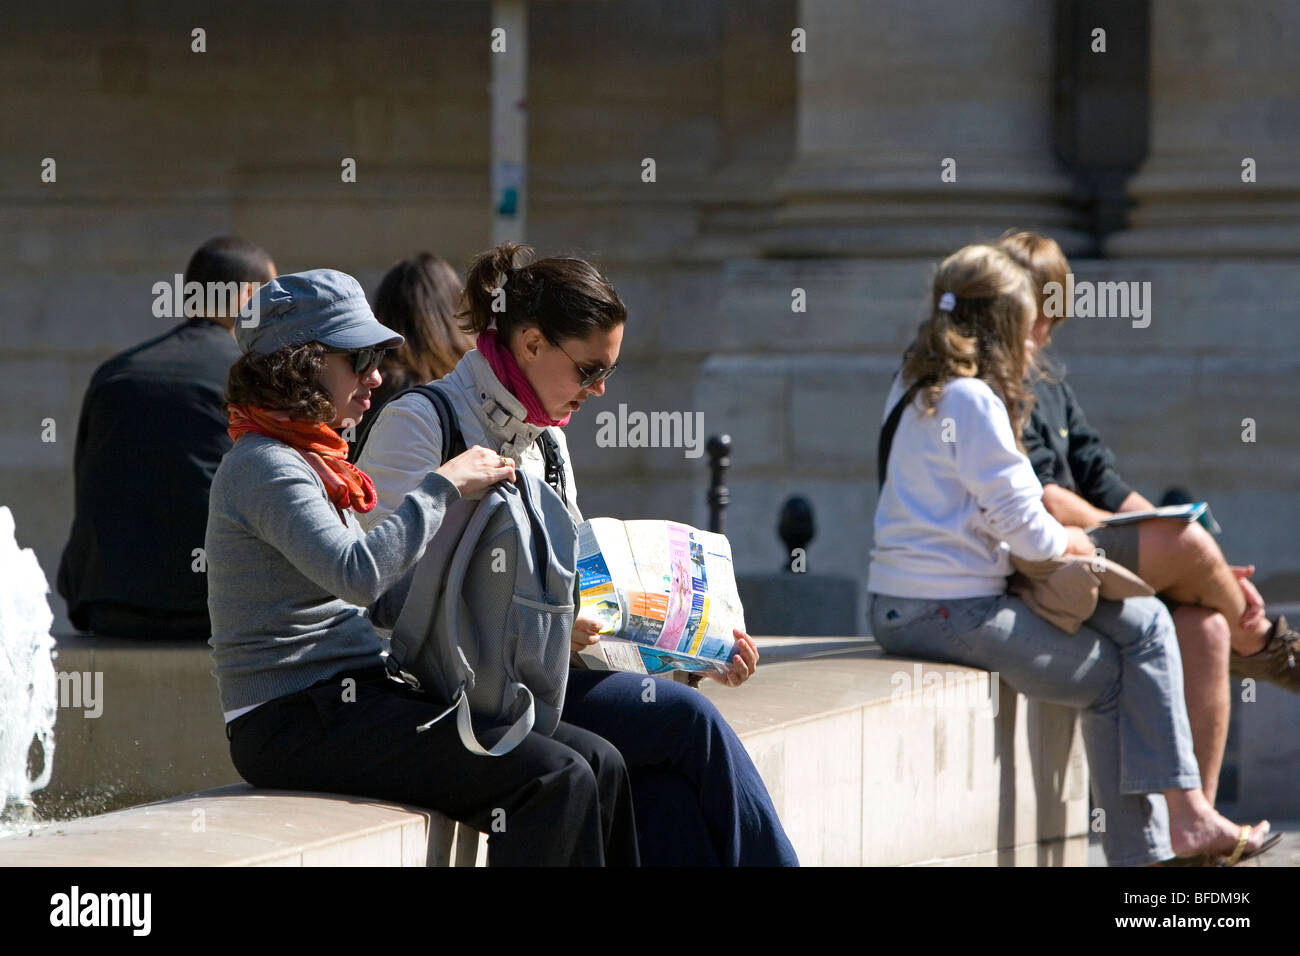 Students study near the Sorbonne in Paris, France. - Stock Image